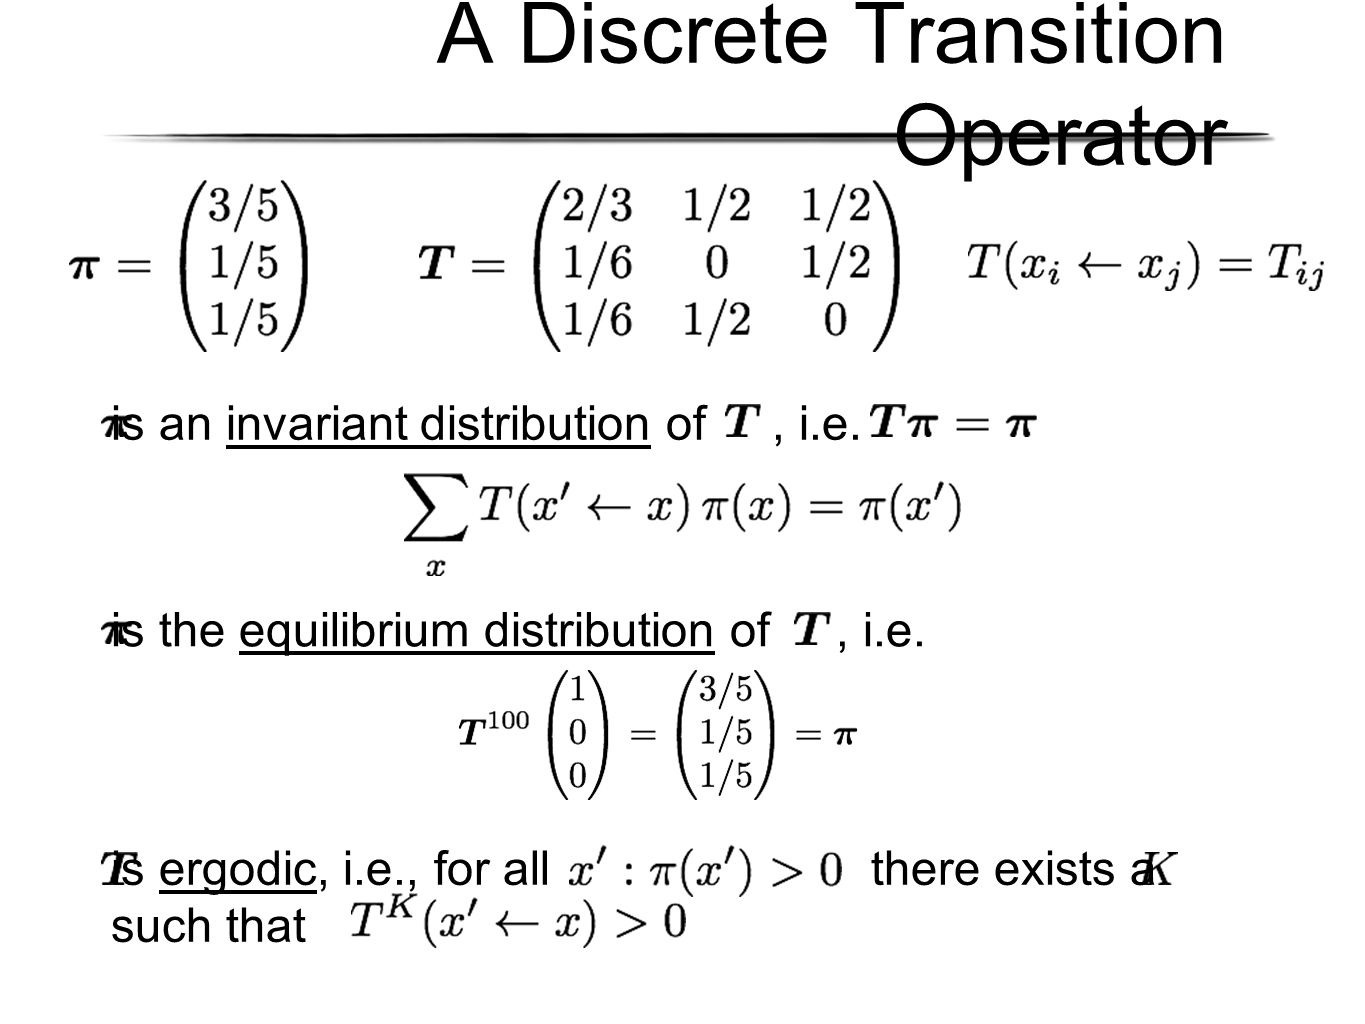 A Discrete Transition Operator is an invariant distribution of, i.e.